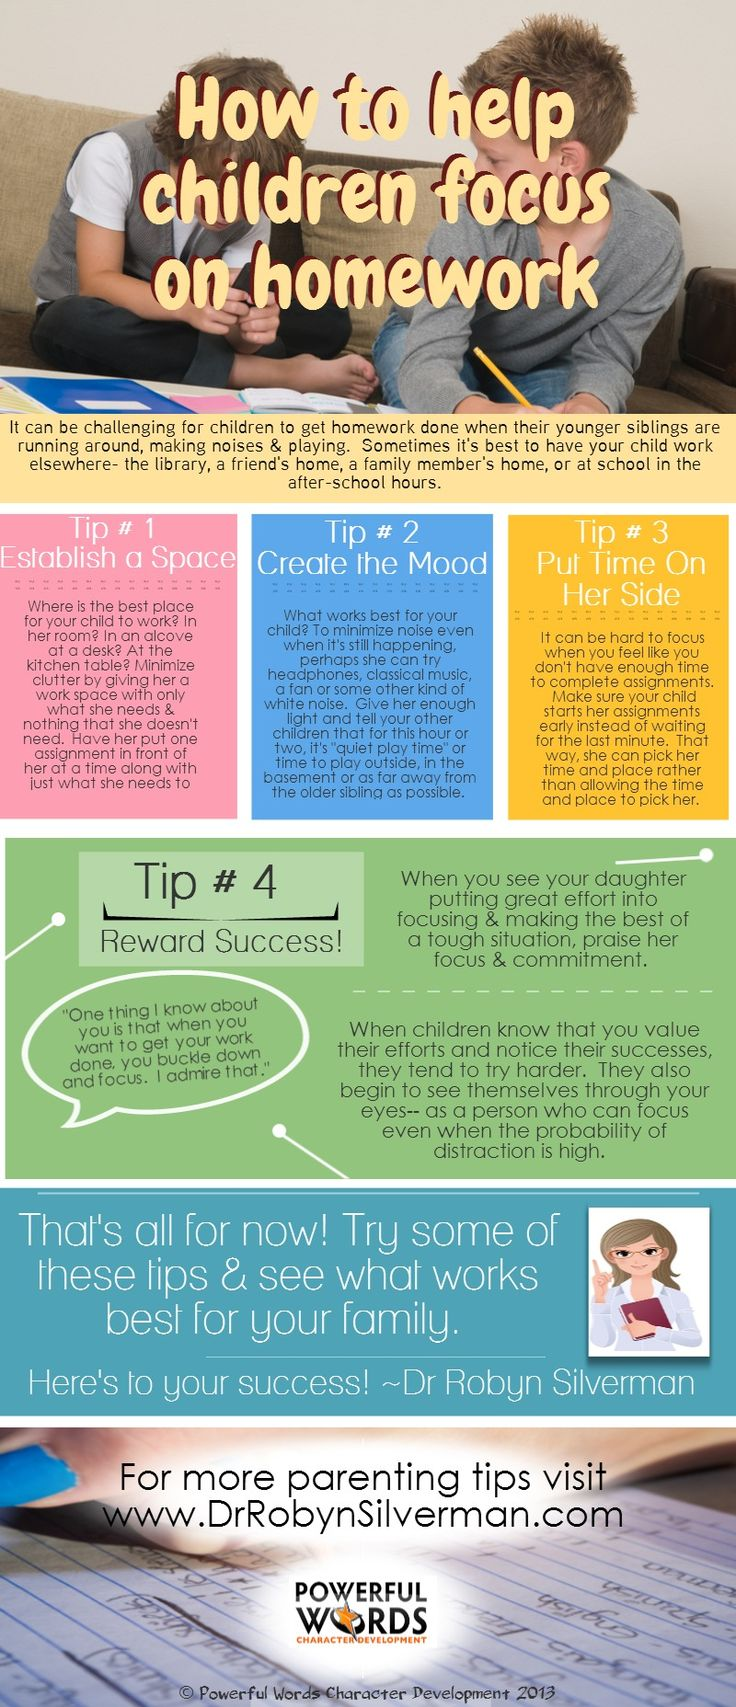 A great #Infographic for #parents who need tips on helping their children #focus on homework! http://www.drrobynsilverman.com/category/parenting-tips/ - ADD / ADHD